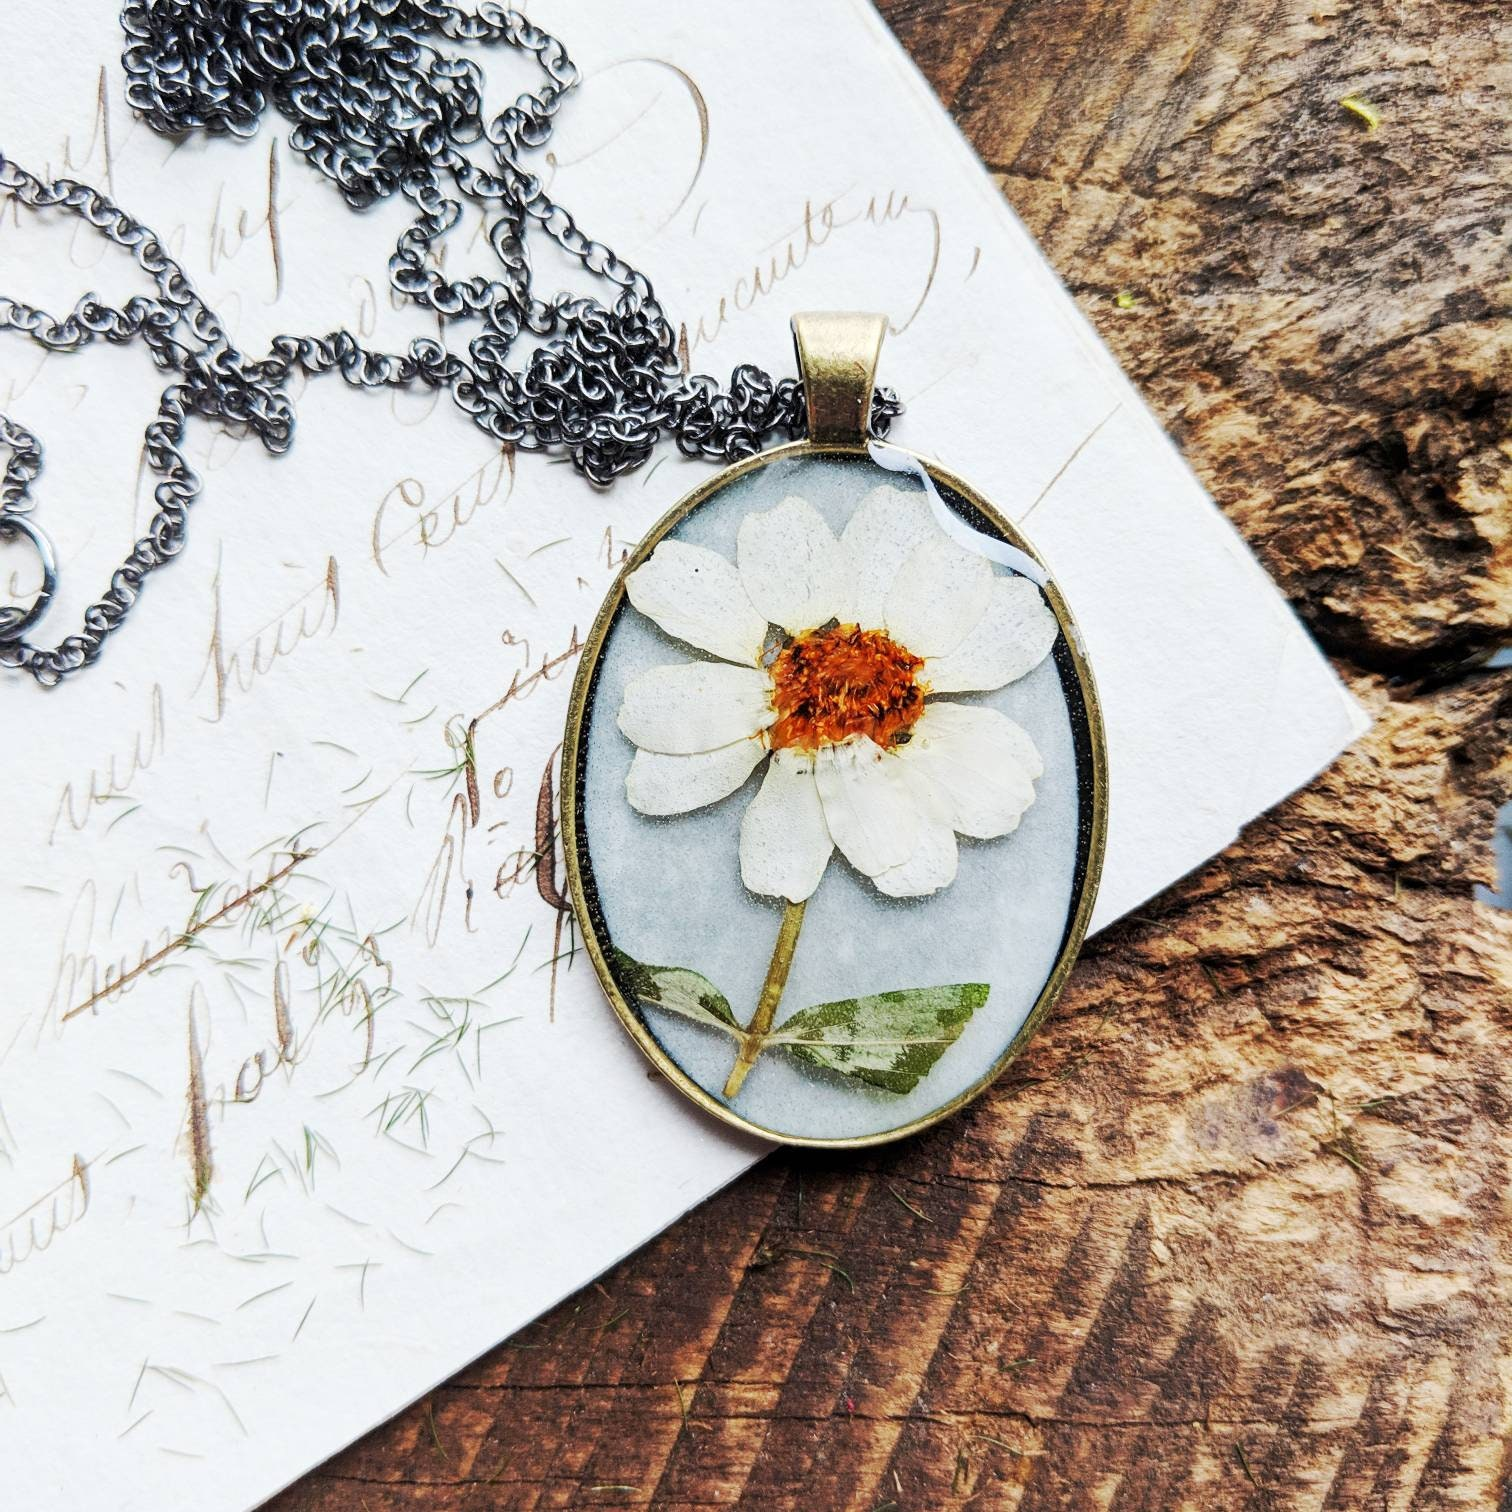 Pressed flower necklace real summer cosmo cream floral fresh fun resin garden preserved nature mothers day gift present brass extra long